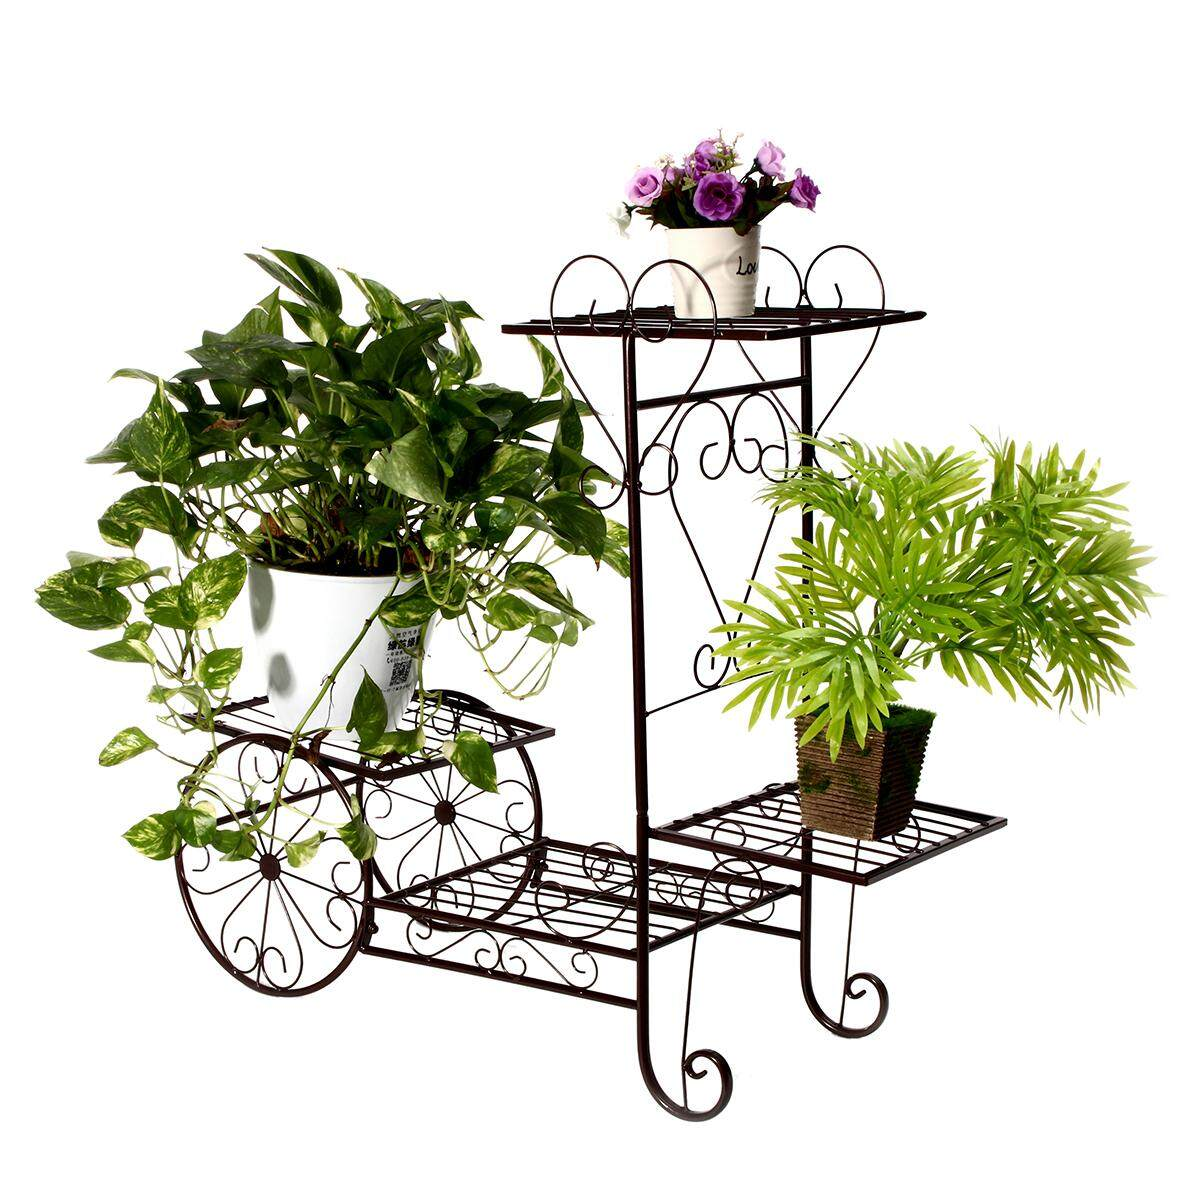 Iron Bicycle Flower Pot Cart White Black Plant Garden Metal Planter Stand Decora#Bronze